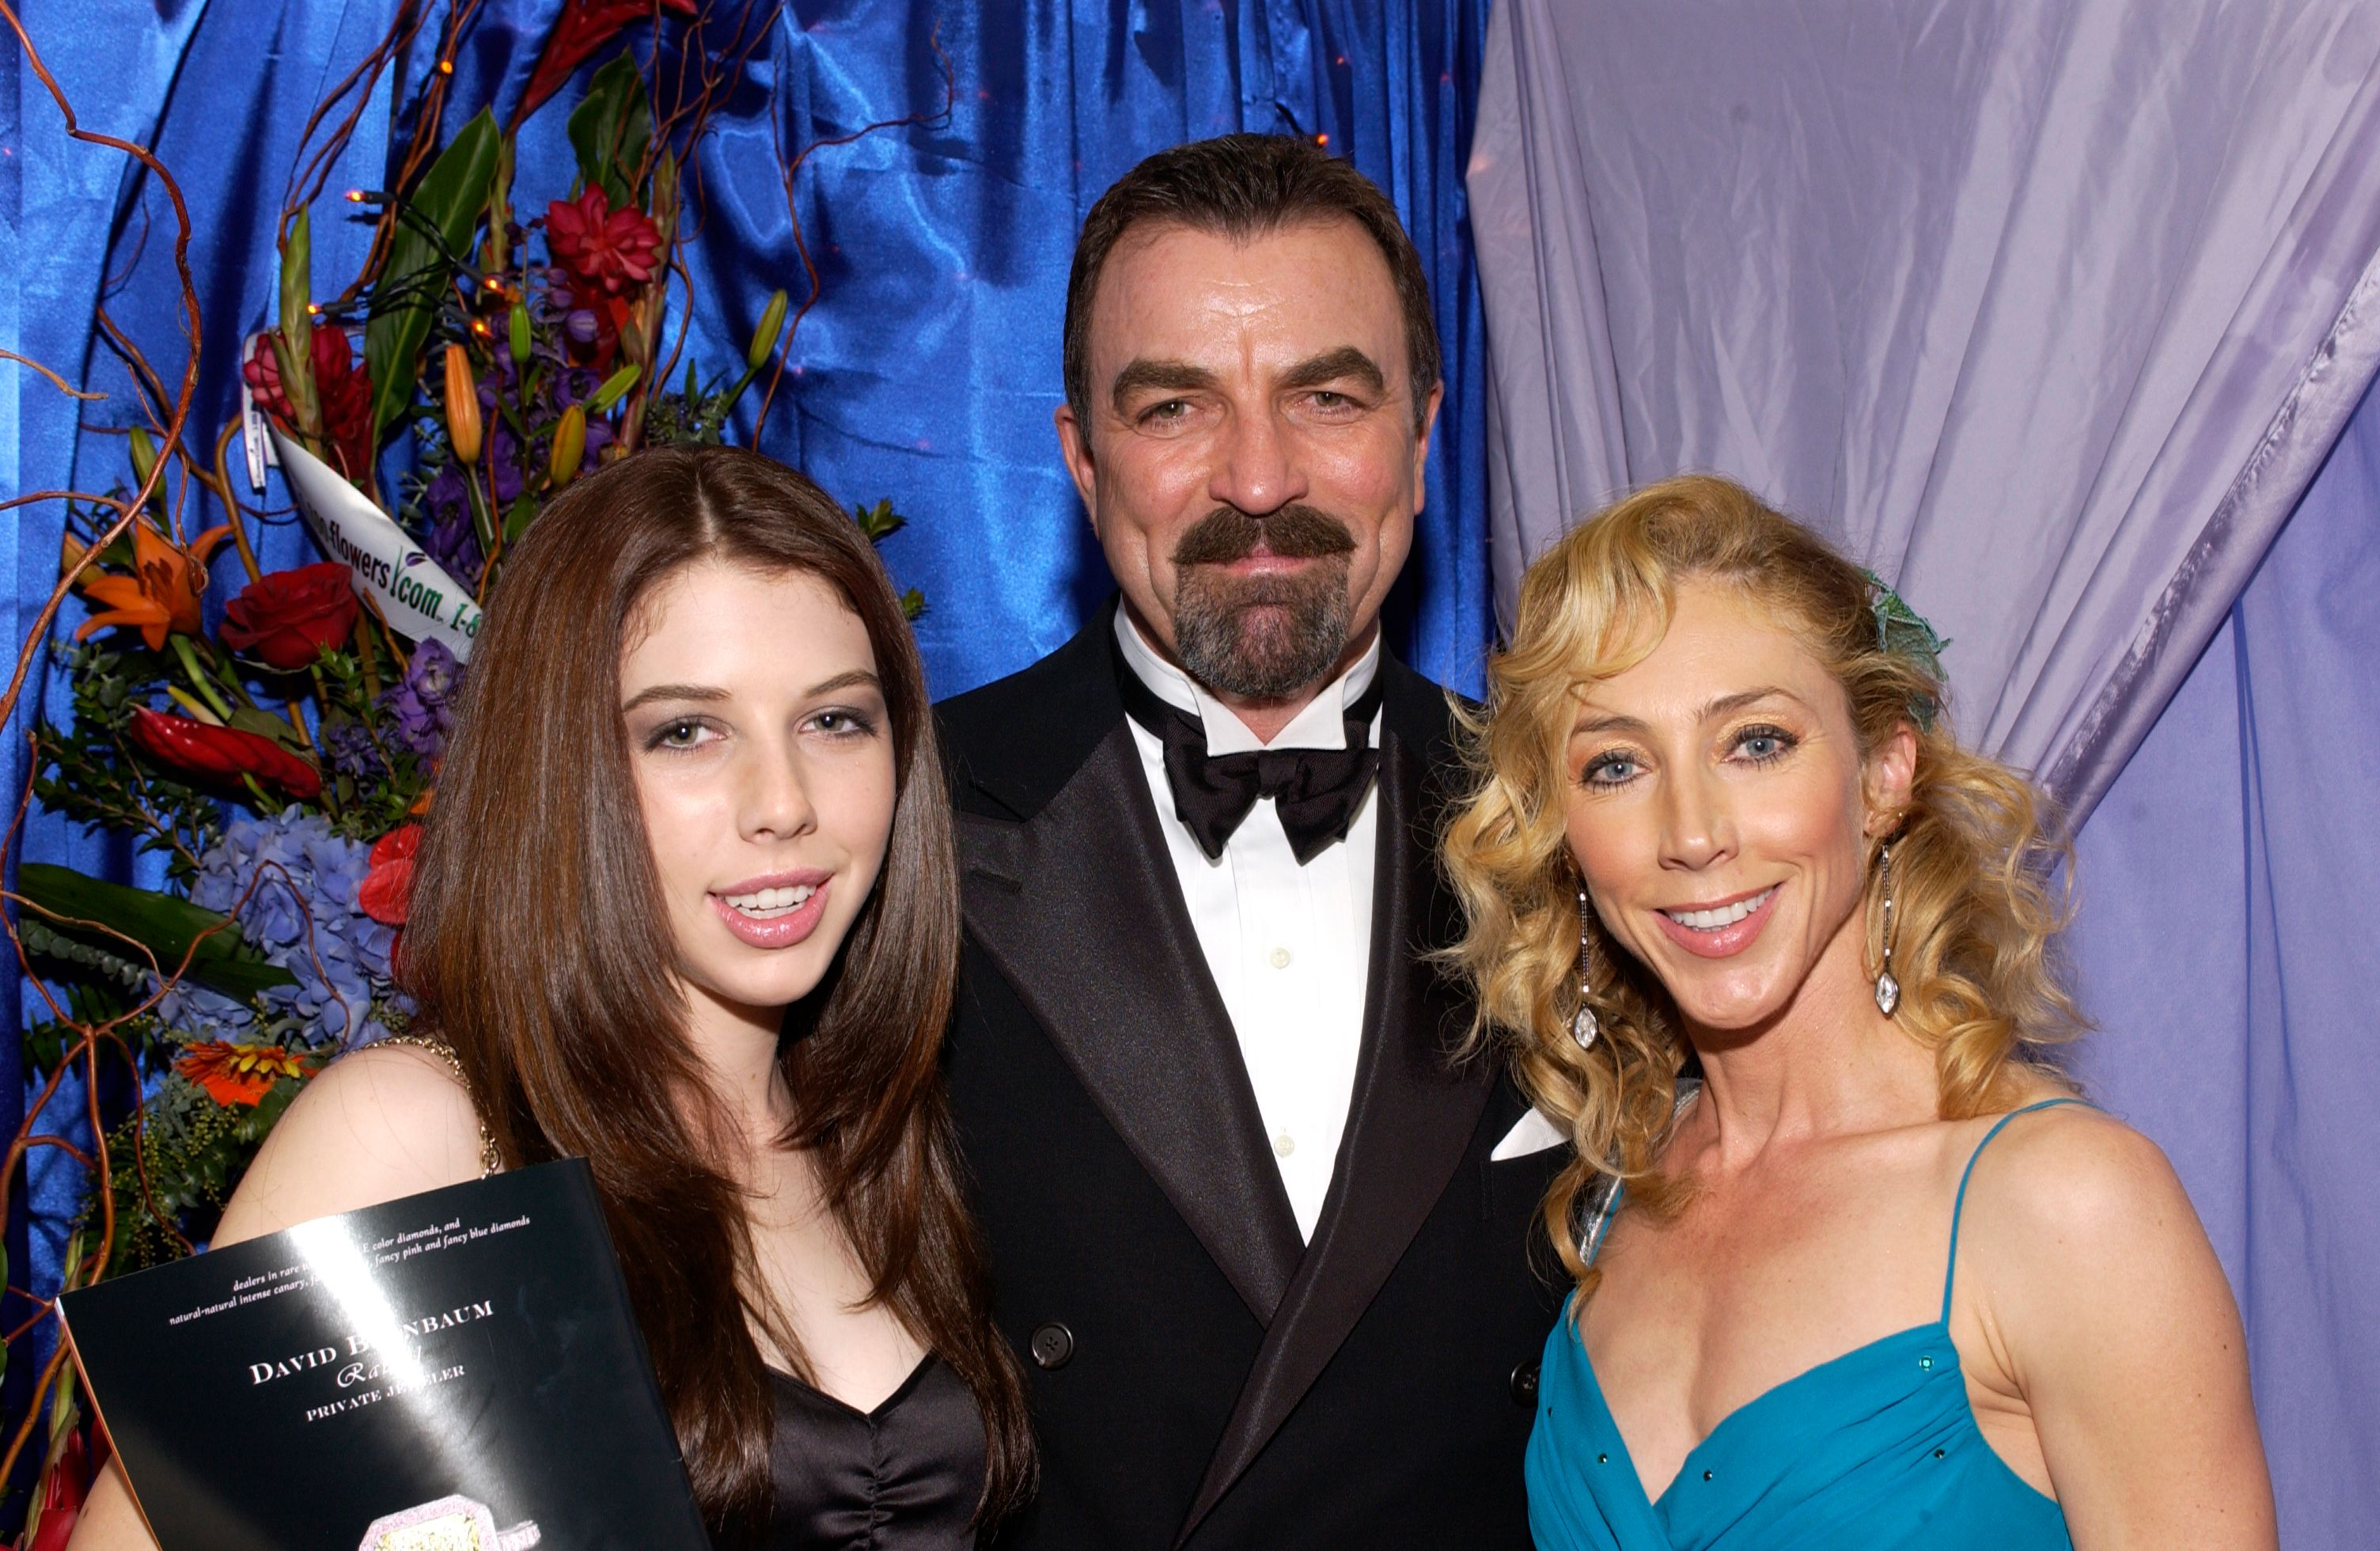 Tom Selleck, daugher Hannah and wife Jillie Mack at the Distinctive Assets Gift Lounge during the People?s Choice Awards on January 9, 2005 in Pasadena, California | Photo: Getty Images